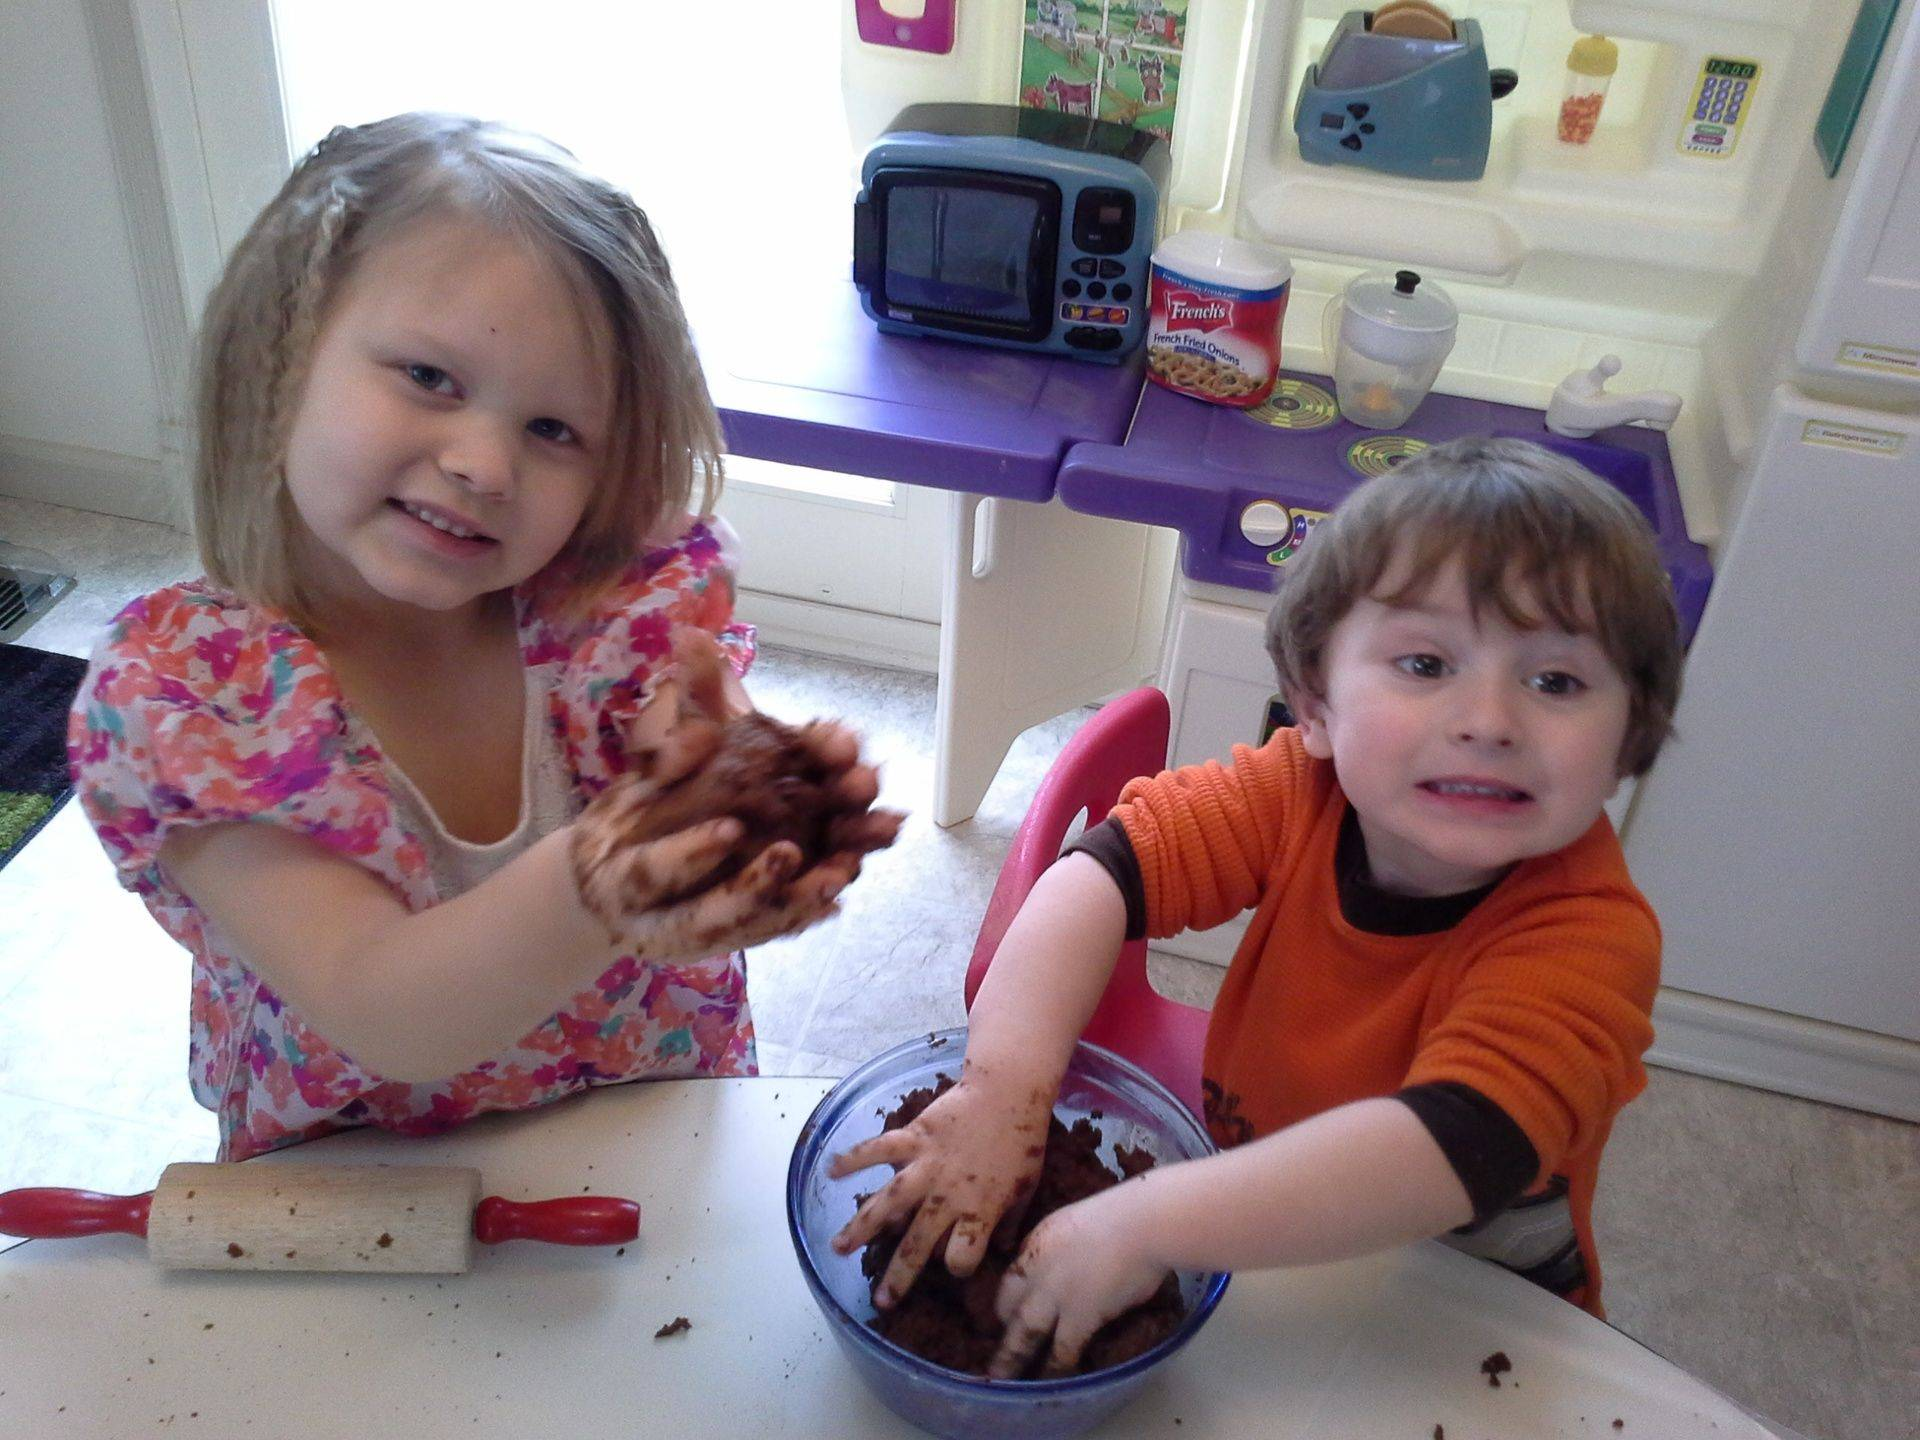 Day Care Center in Wayne